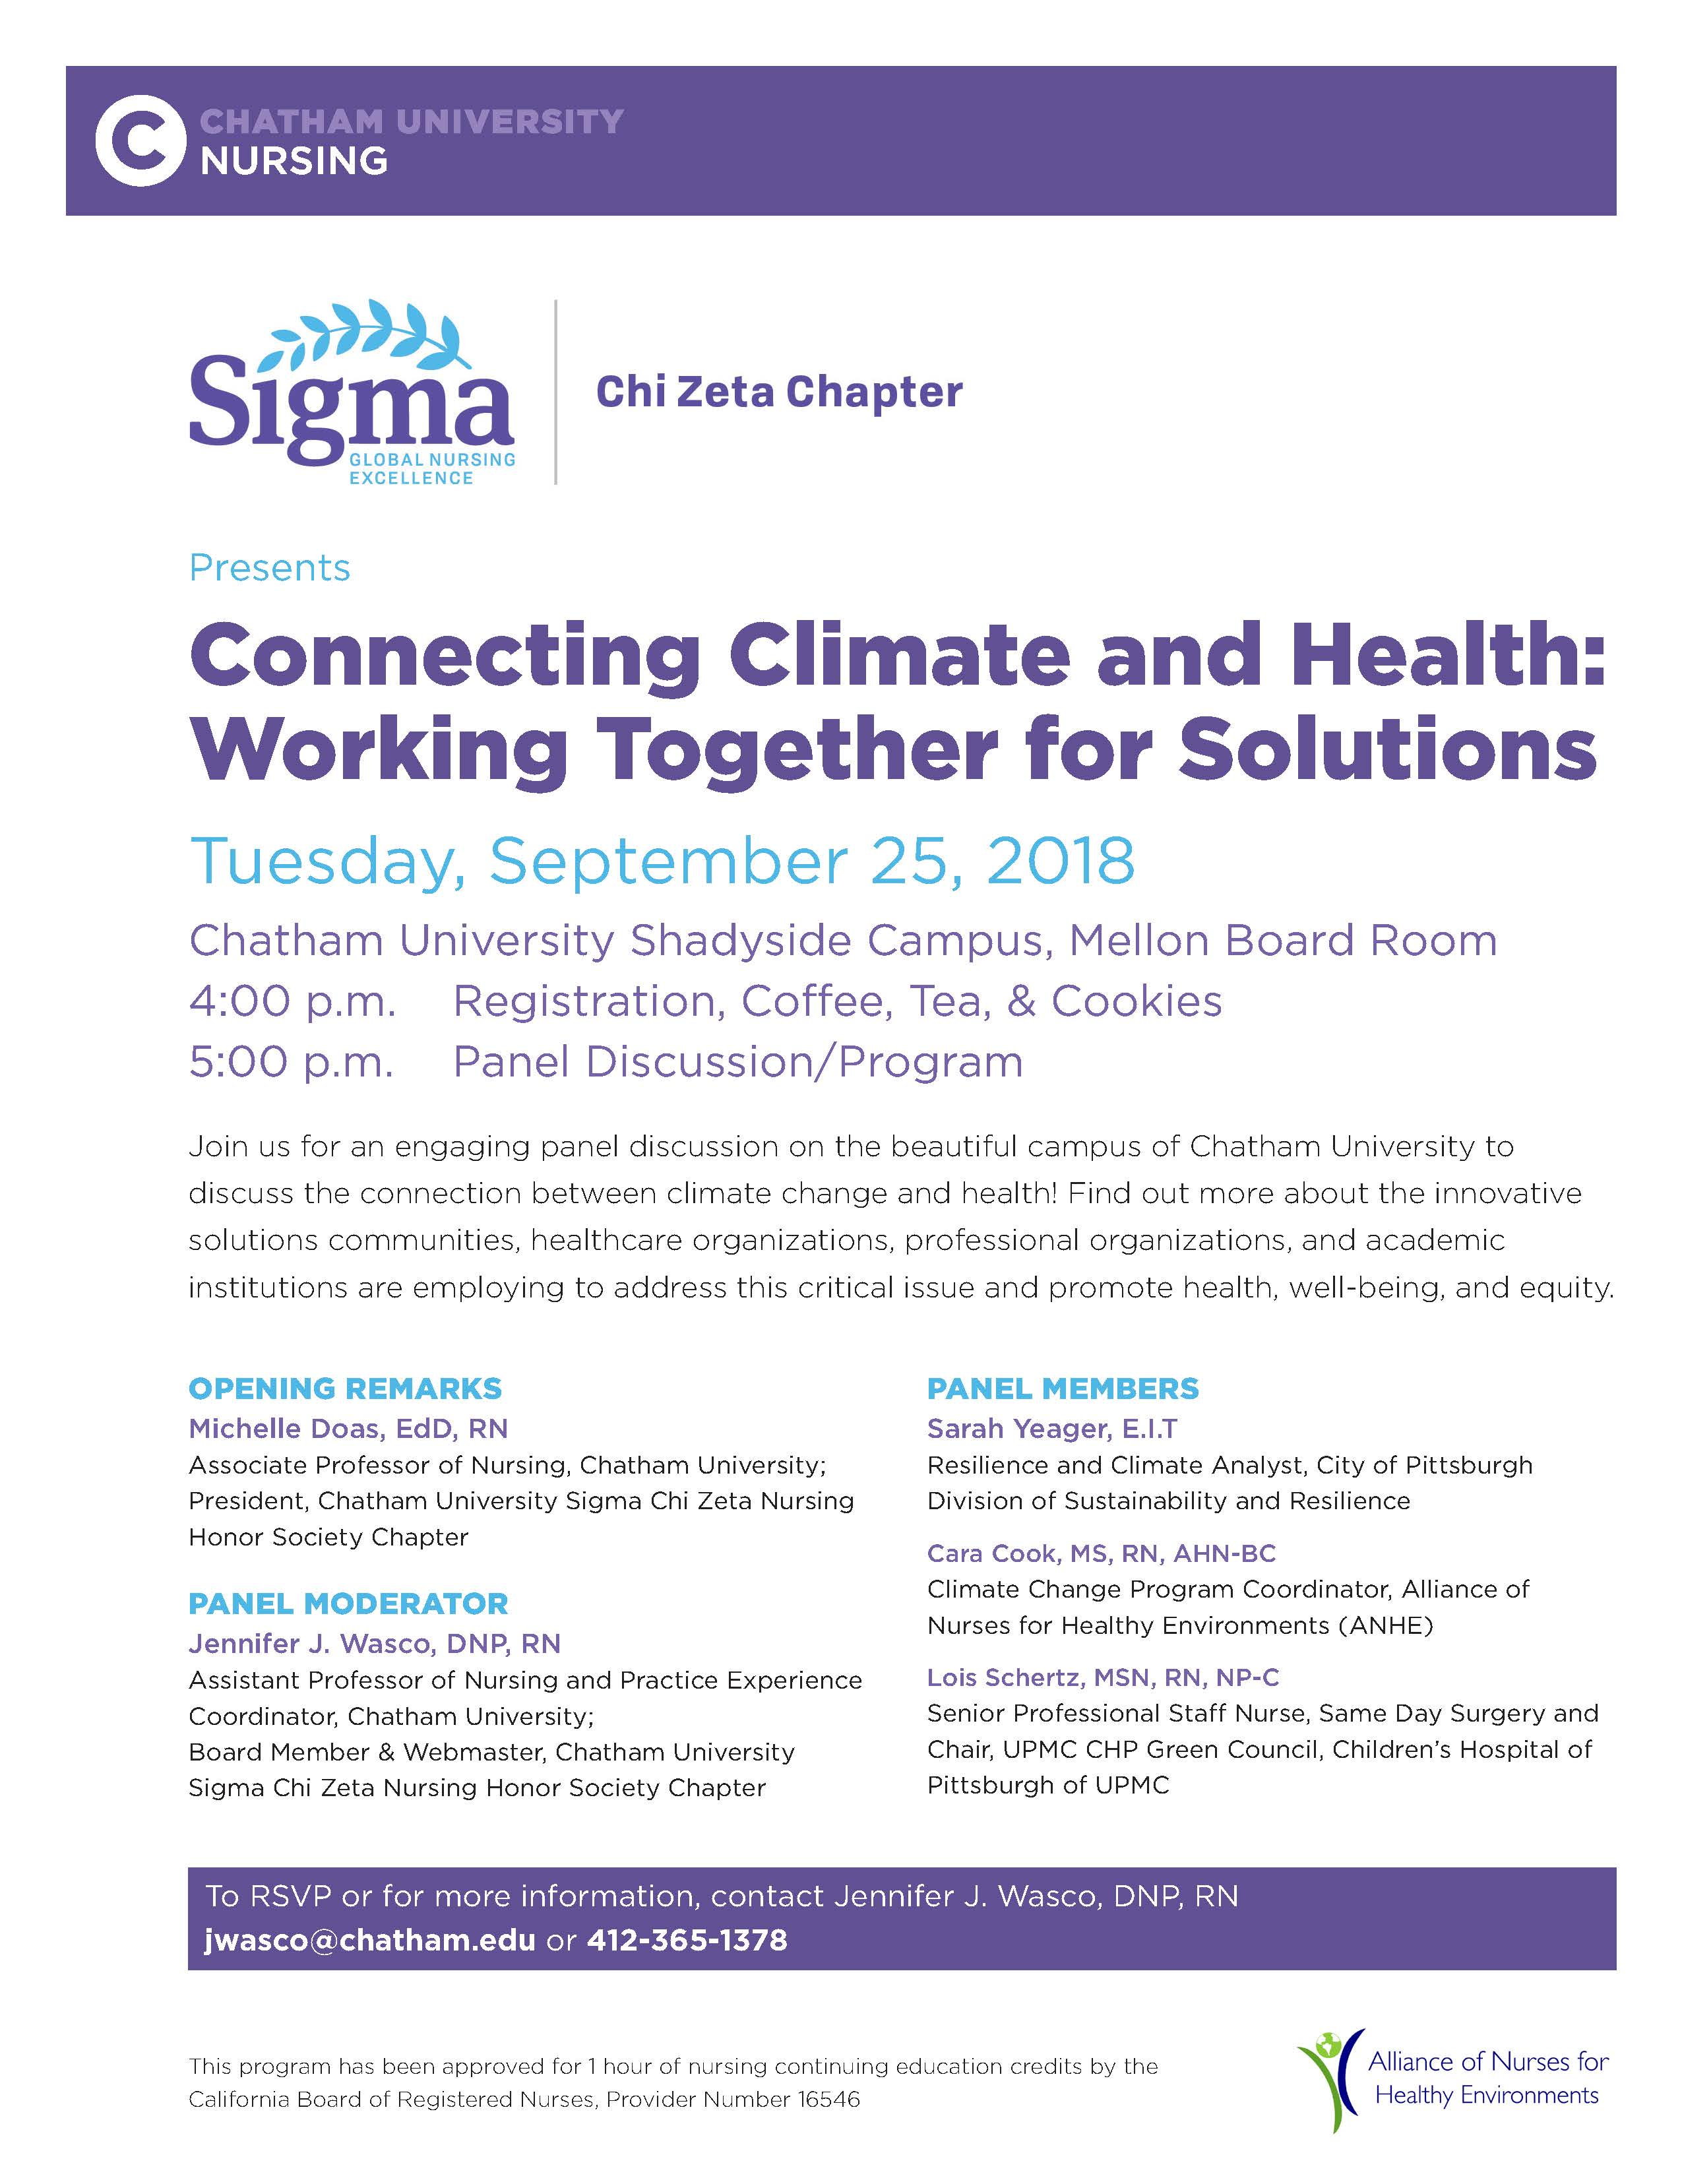 Event Details | Chatham University, Pittsburgh, PA